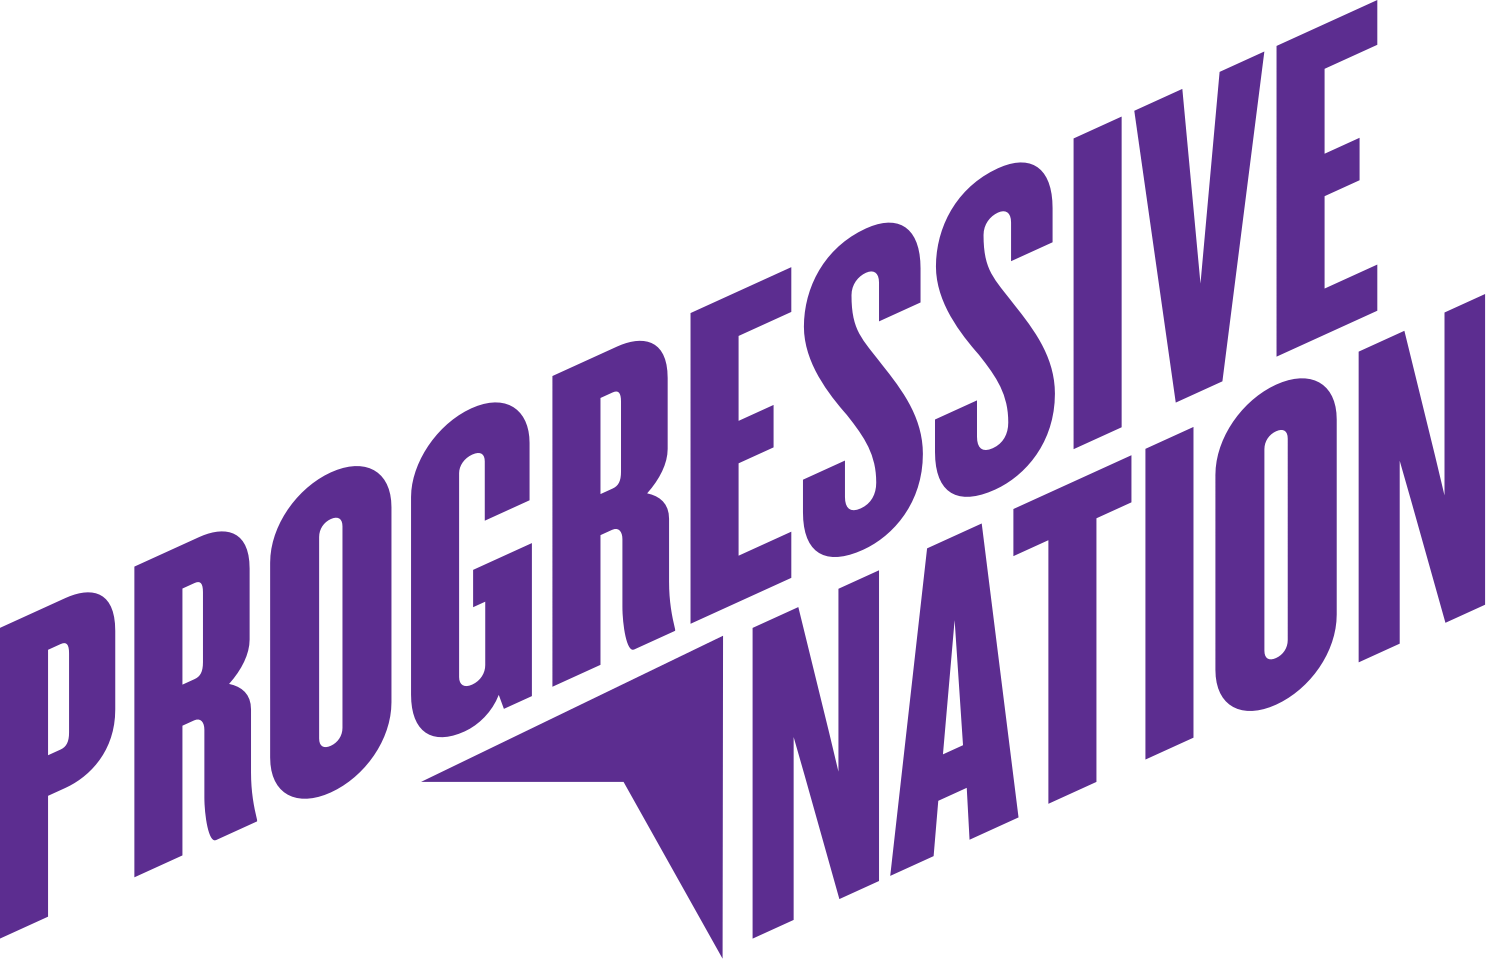 Progressive Nation